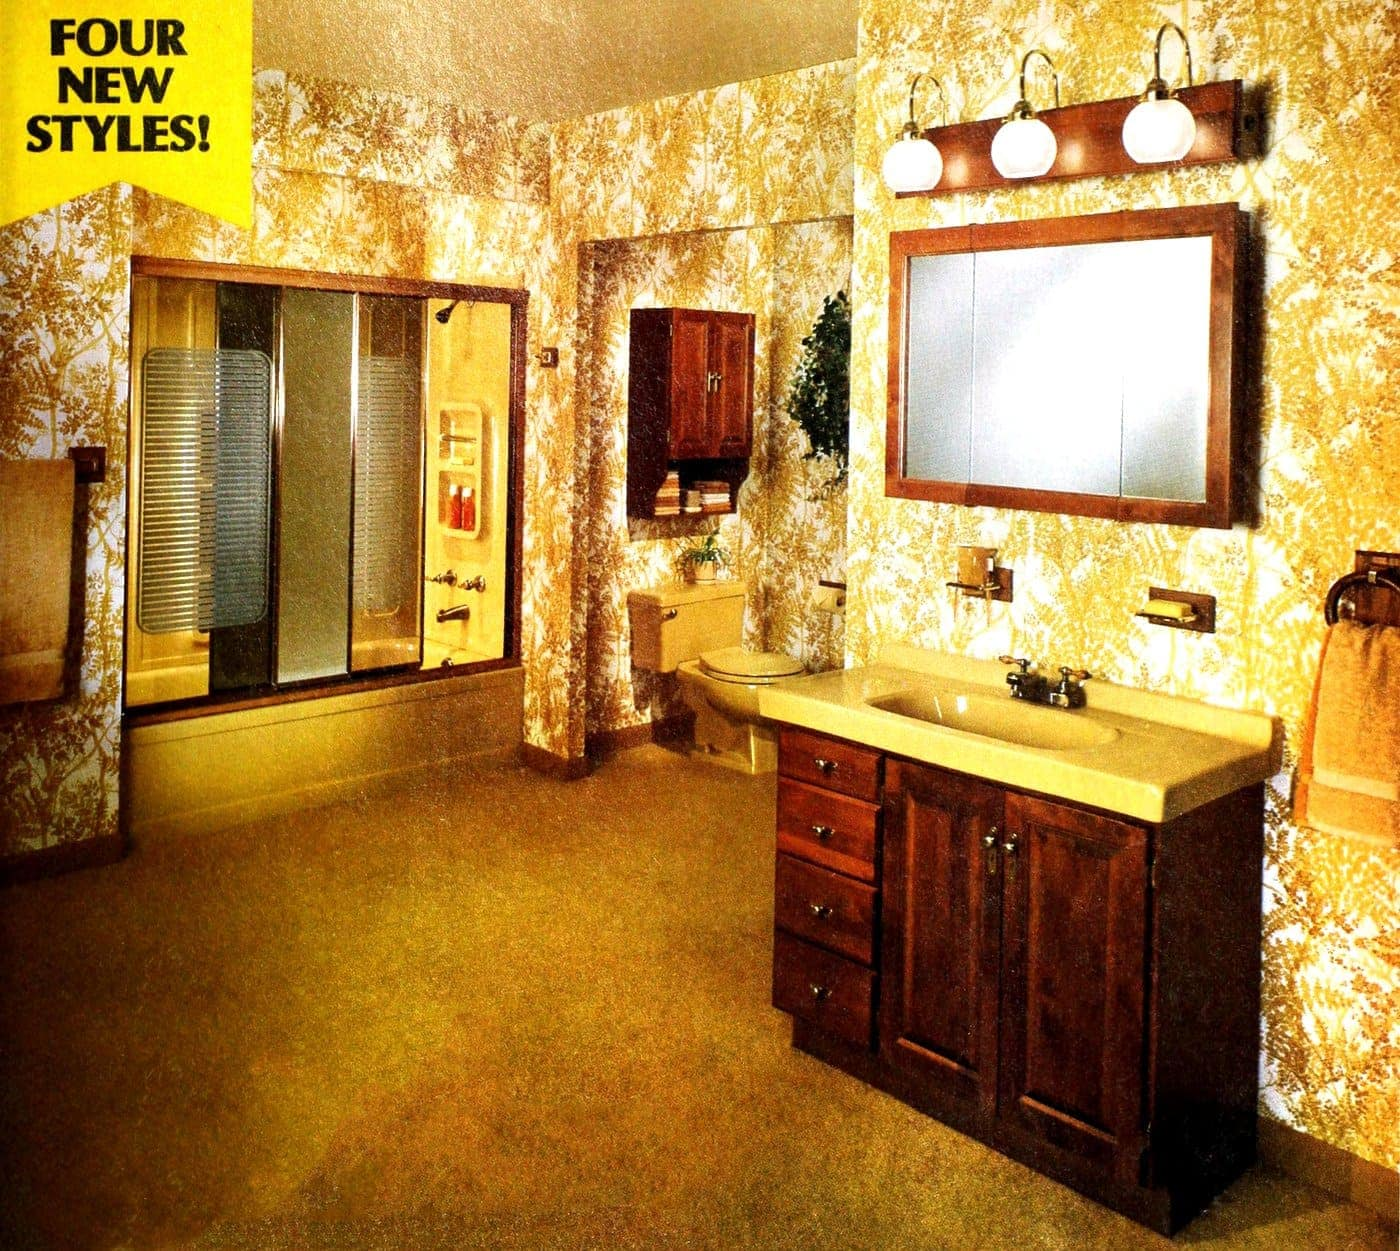 Basic gold and yellow carpeted bathroom with wooden accents from 1978